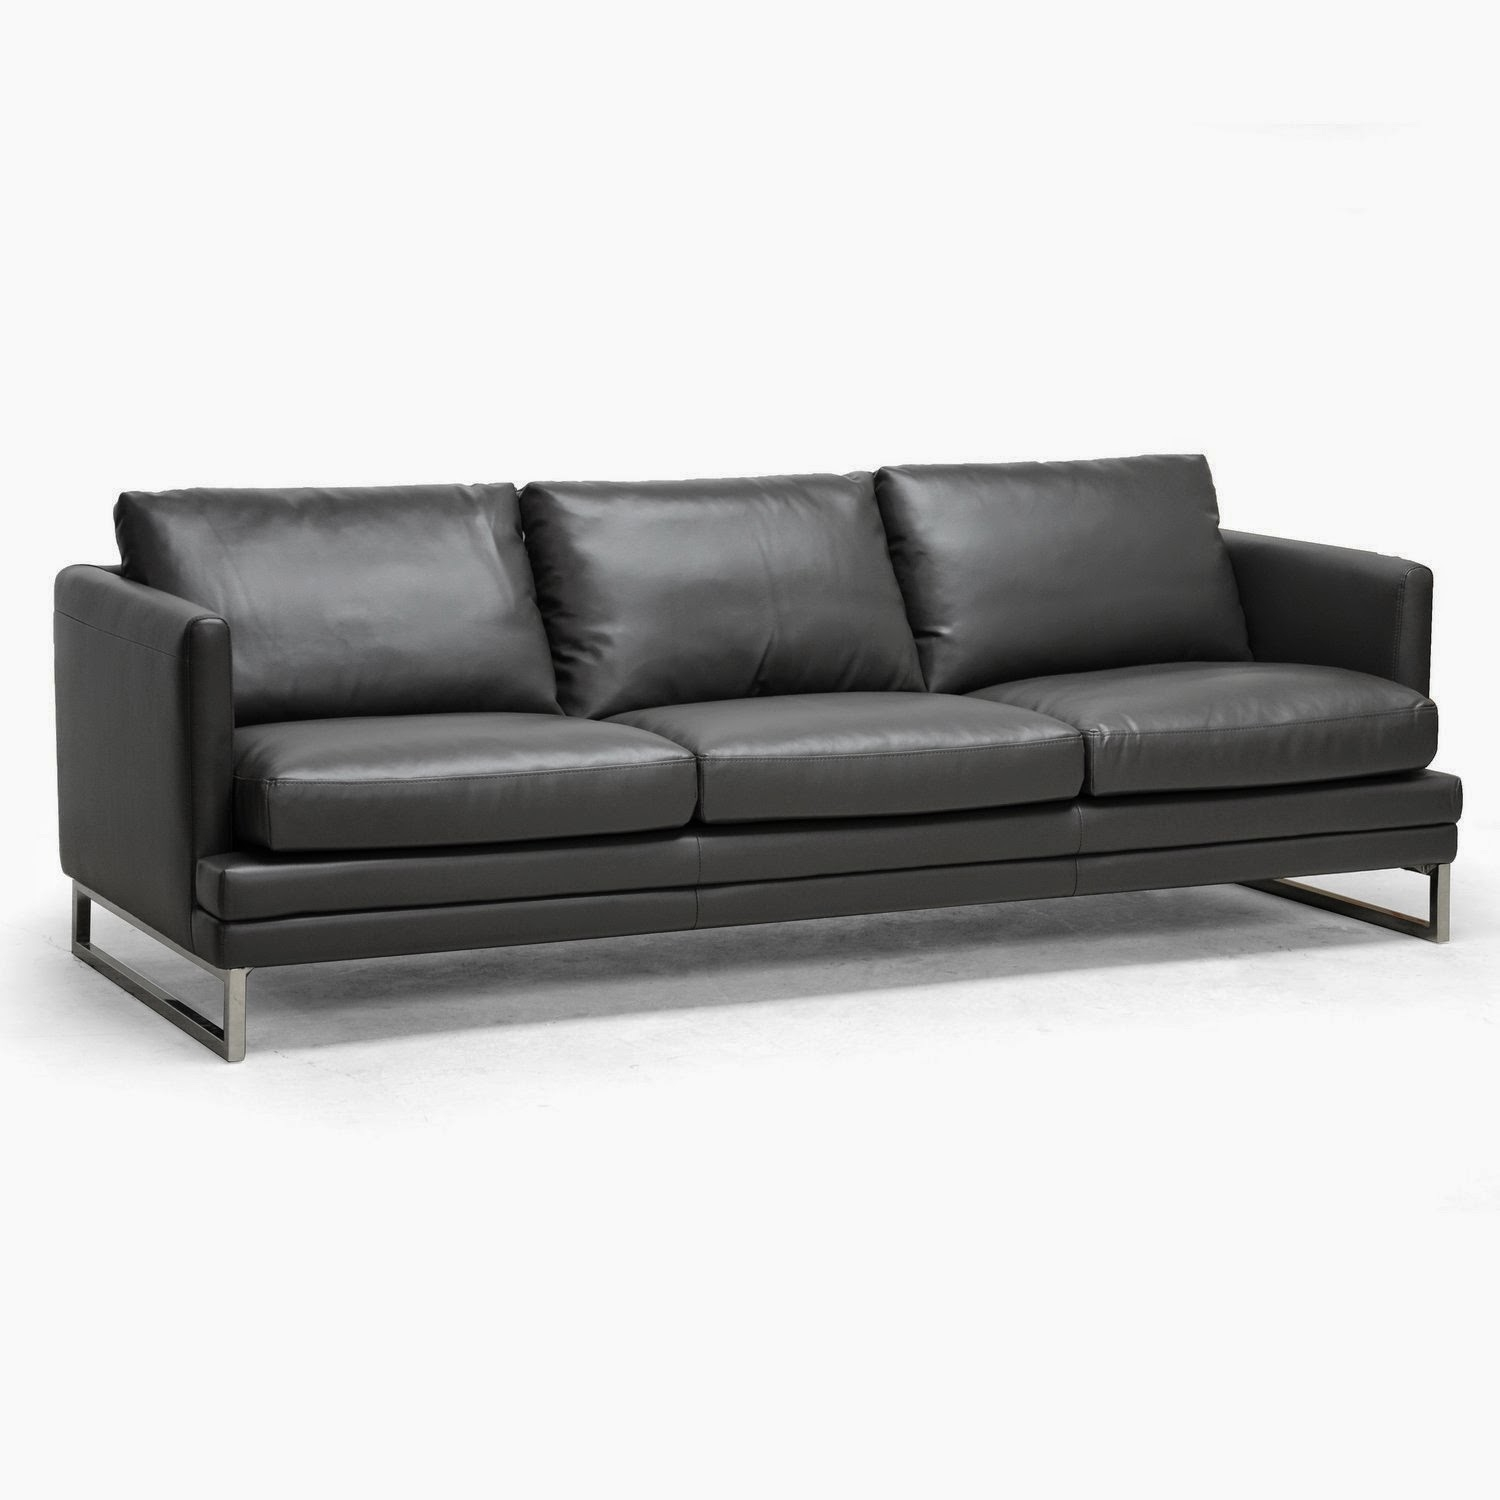 Custom Leather Sectional Sofa has one of the best kind of other is Black Leather Chair Cheap Popular Black Couch Leather - Book of Stefanie